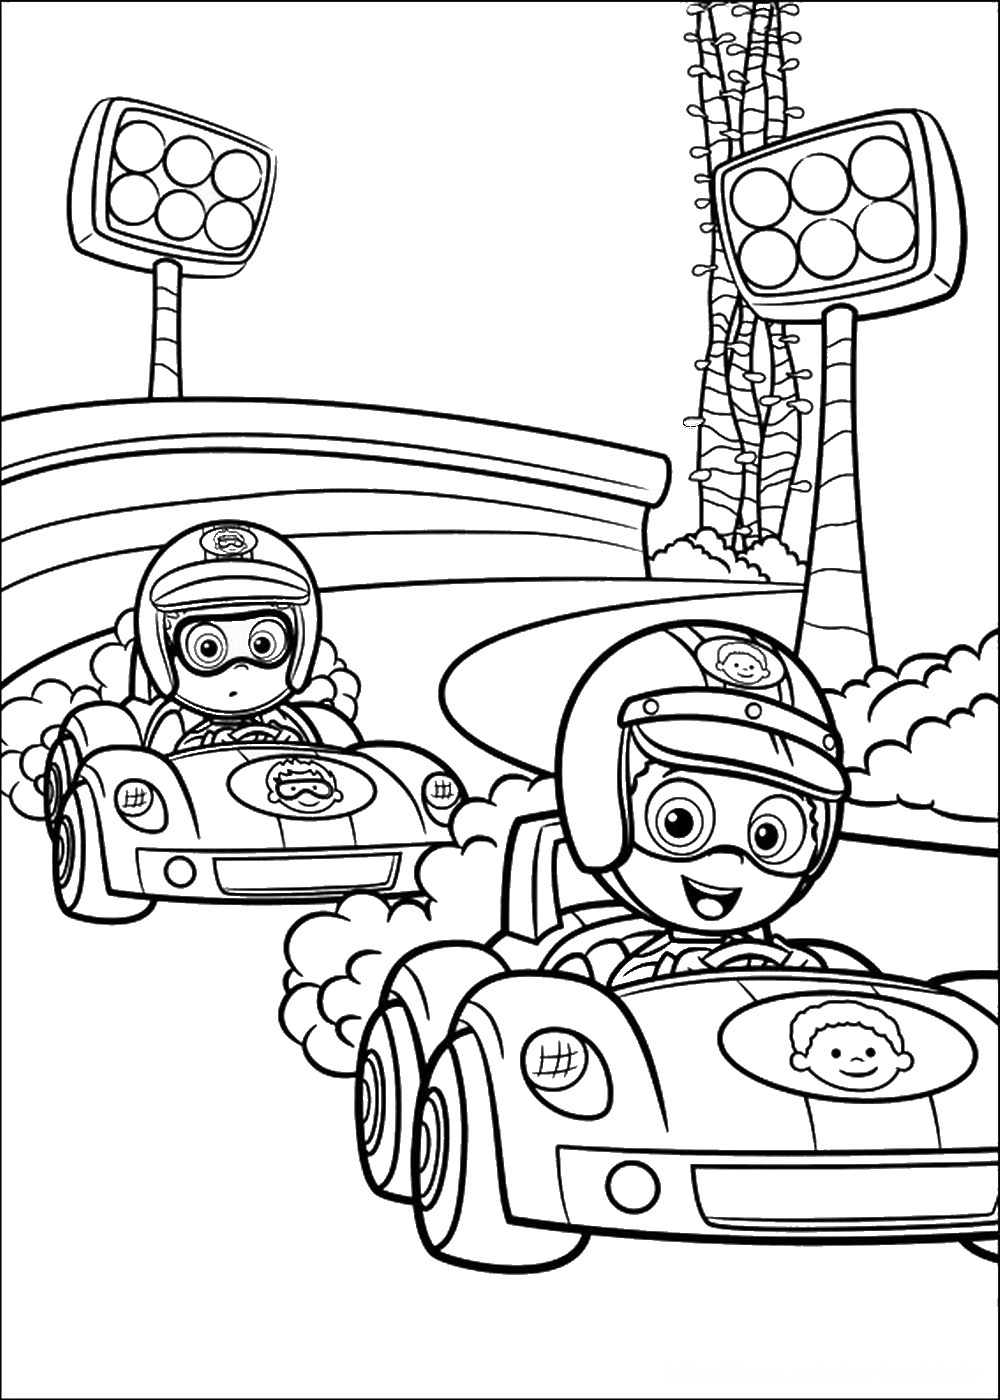 printable coloring book pages - photo#12